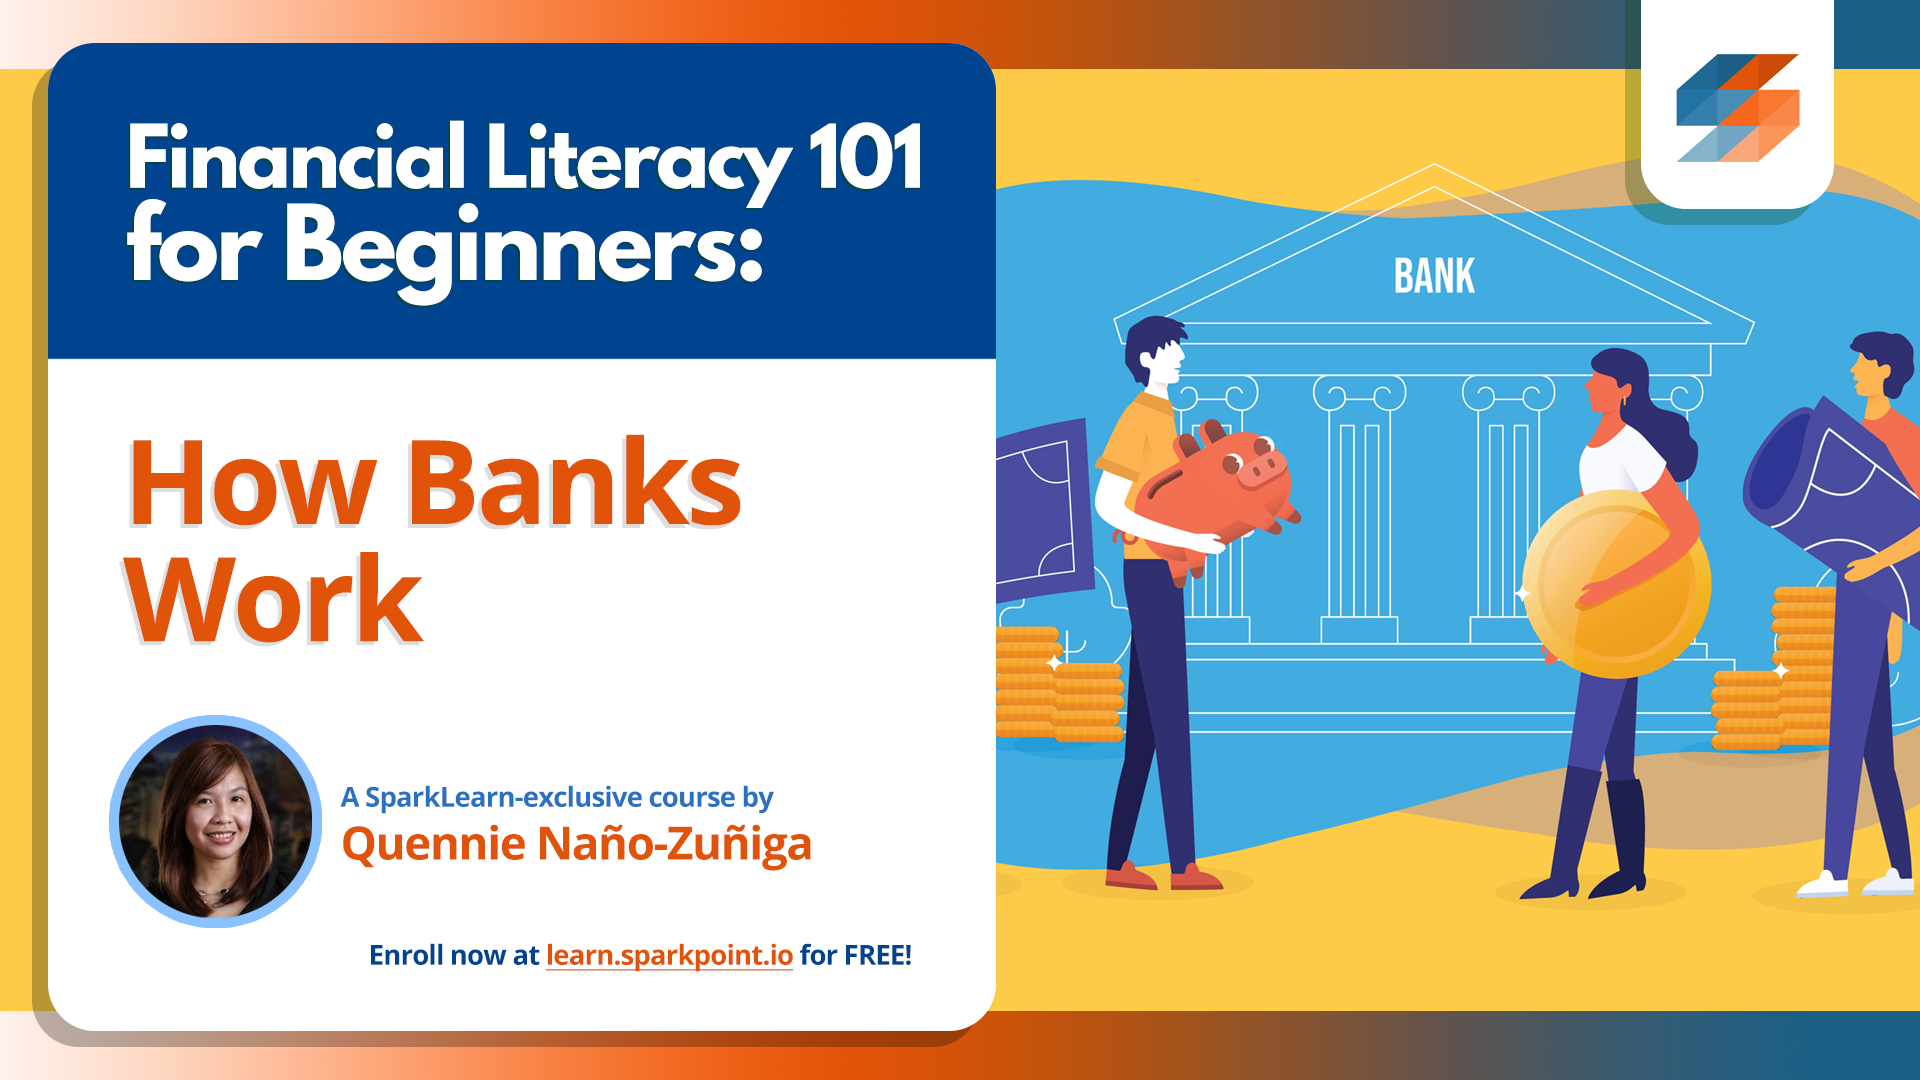 Financial Literacy 101: How Banks Work